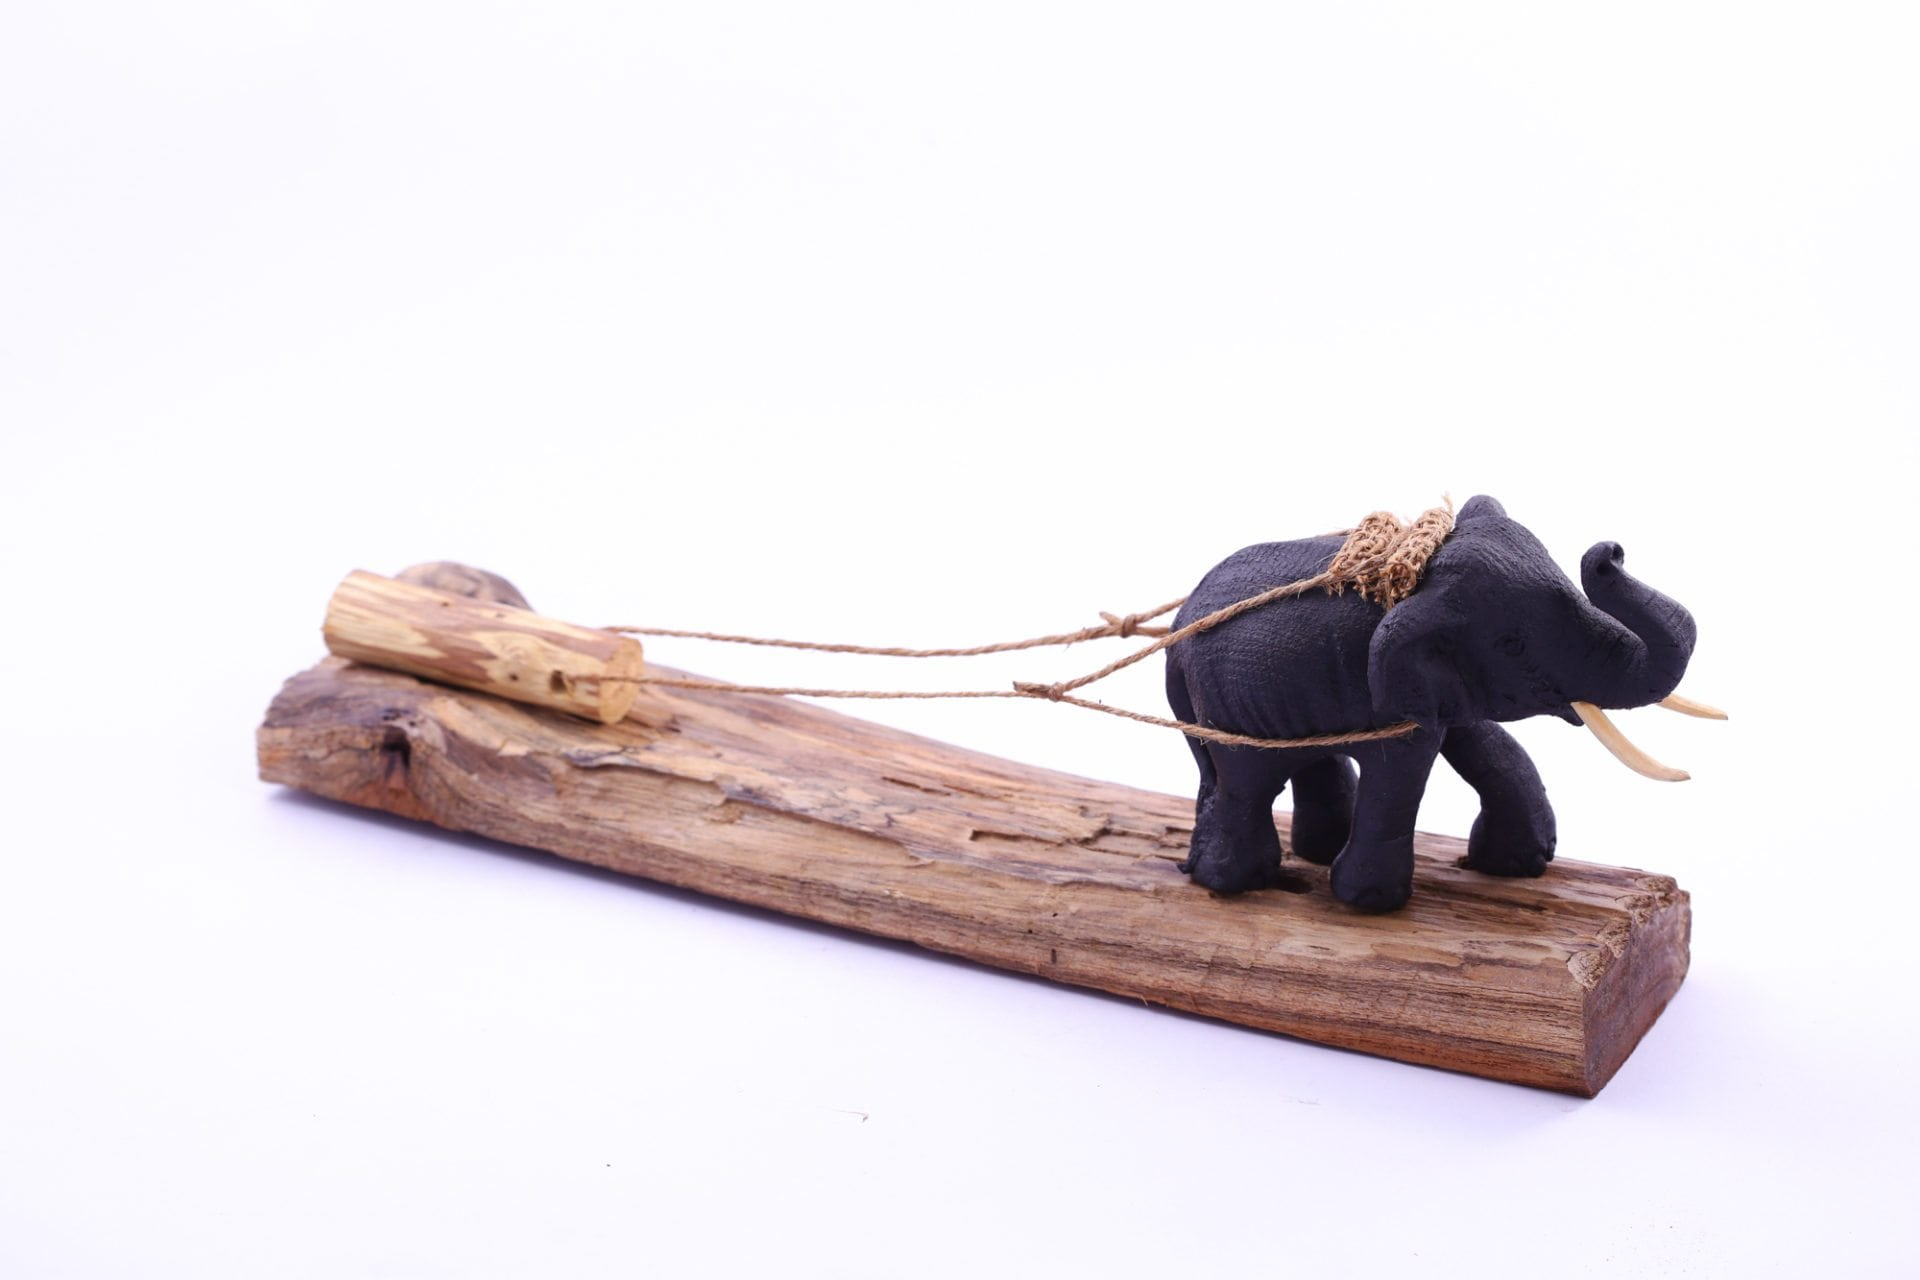 Sawdust Elephant On Wood Figurines